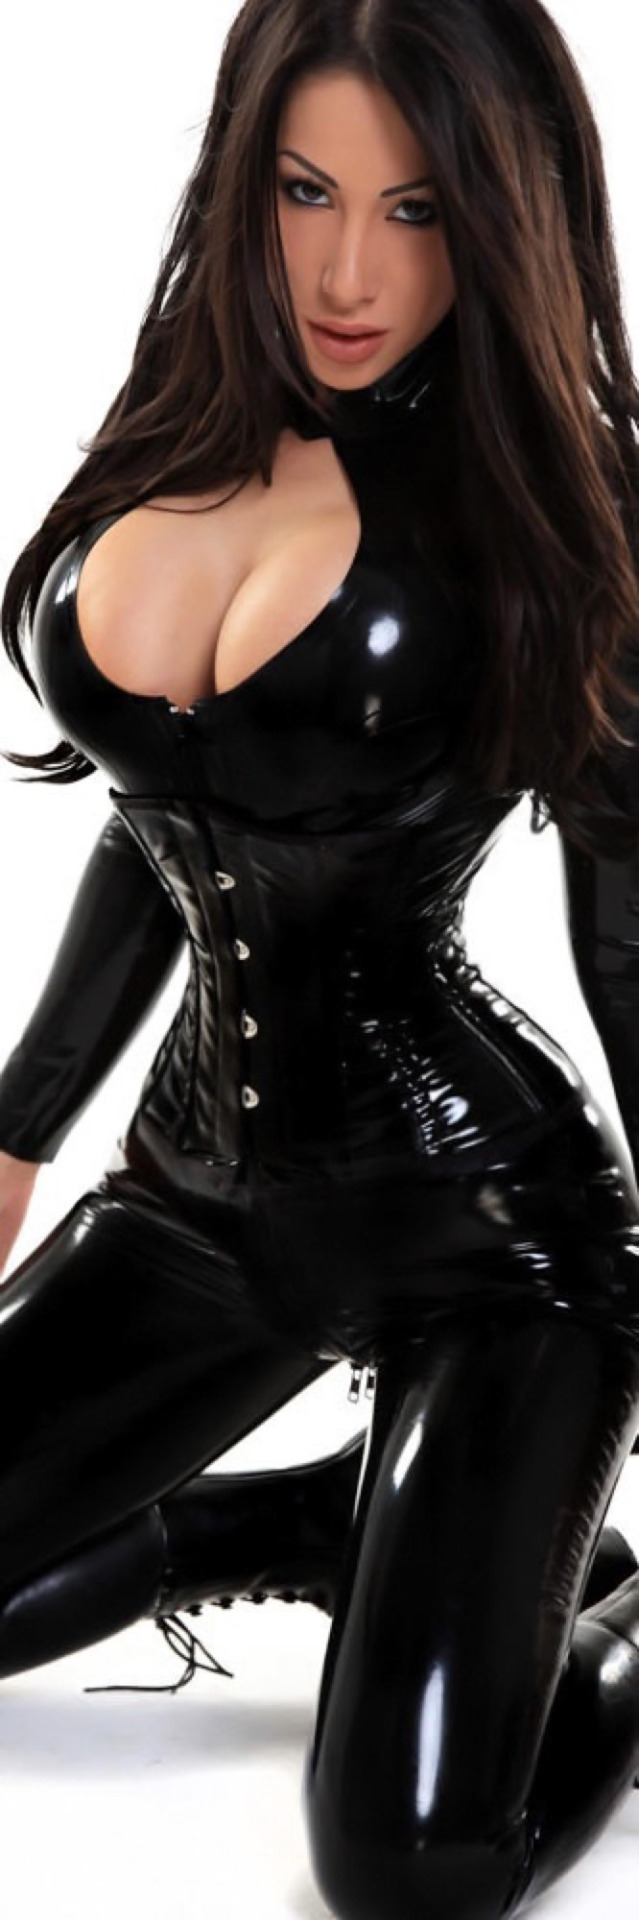 Latex girls wearing leather